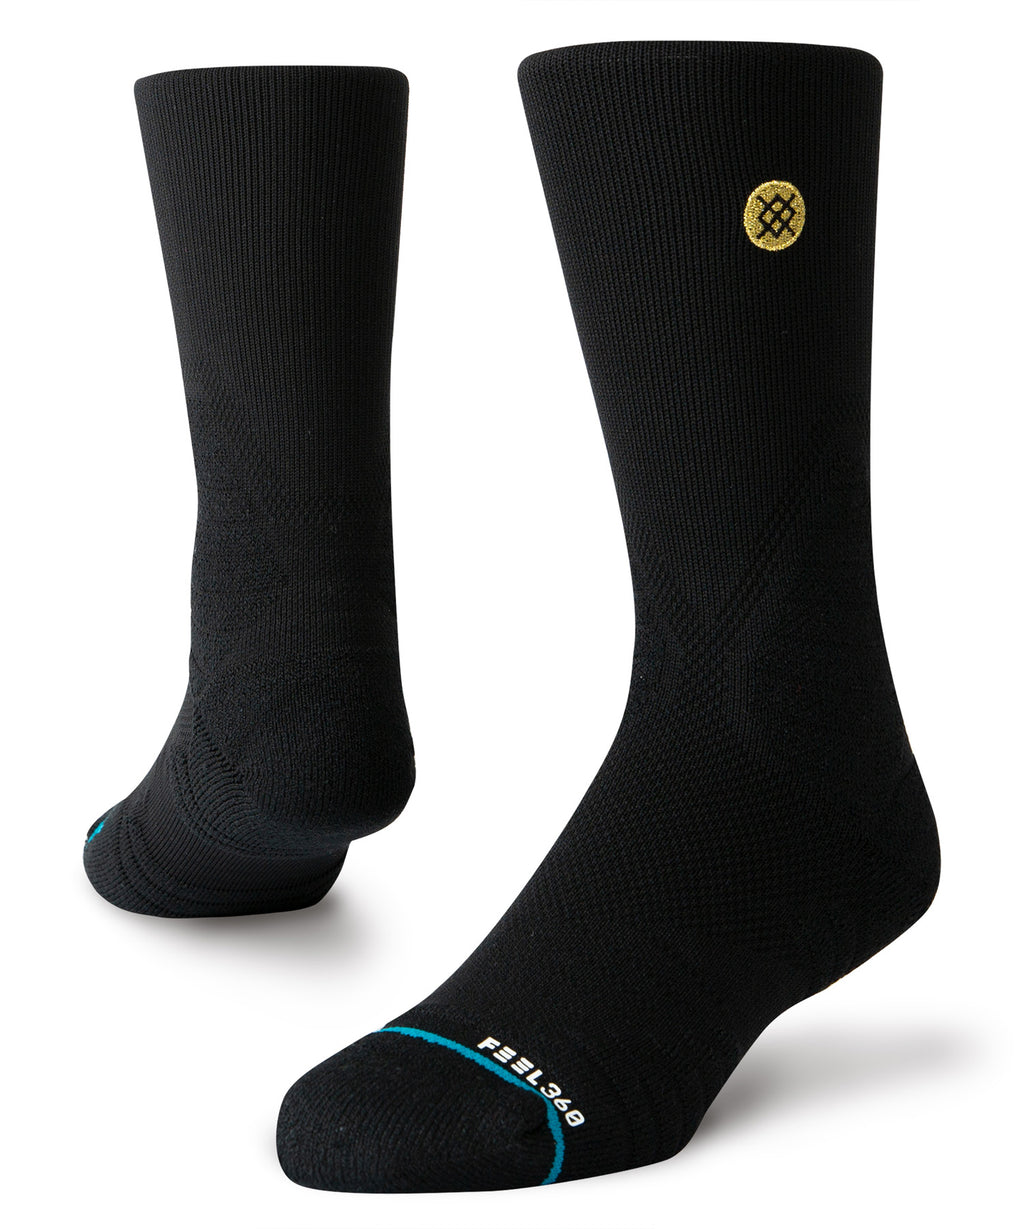 Gameday Pro Crew Socks Black